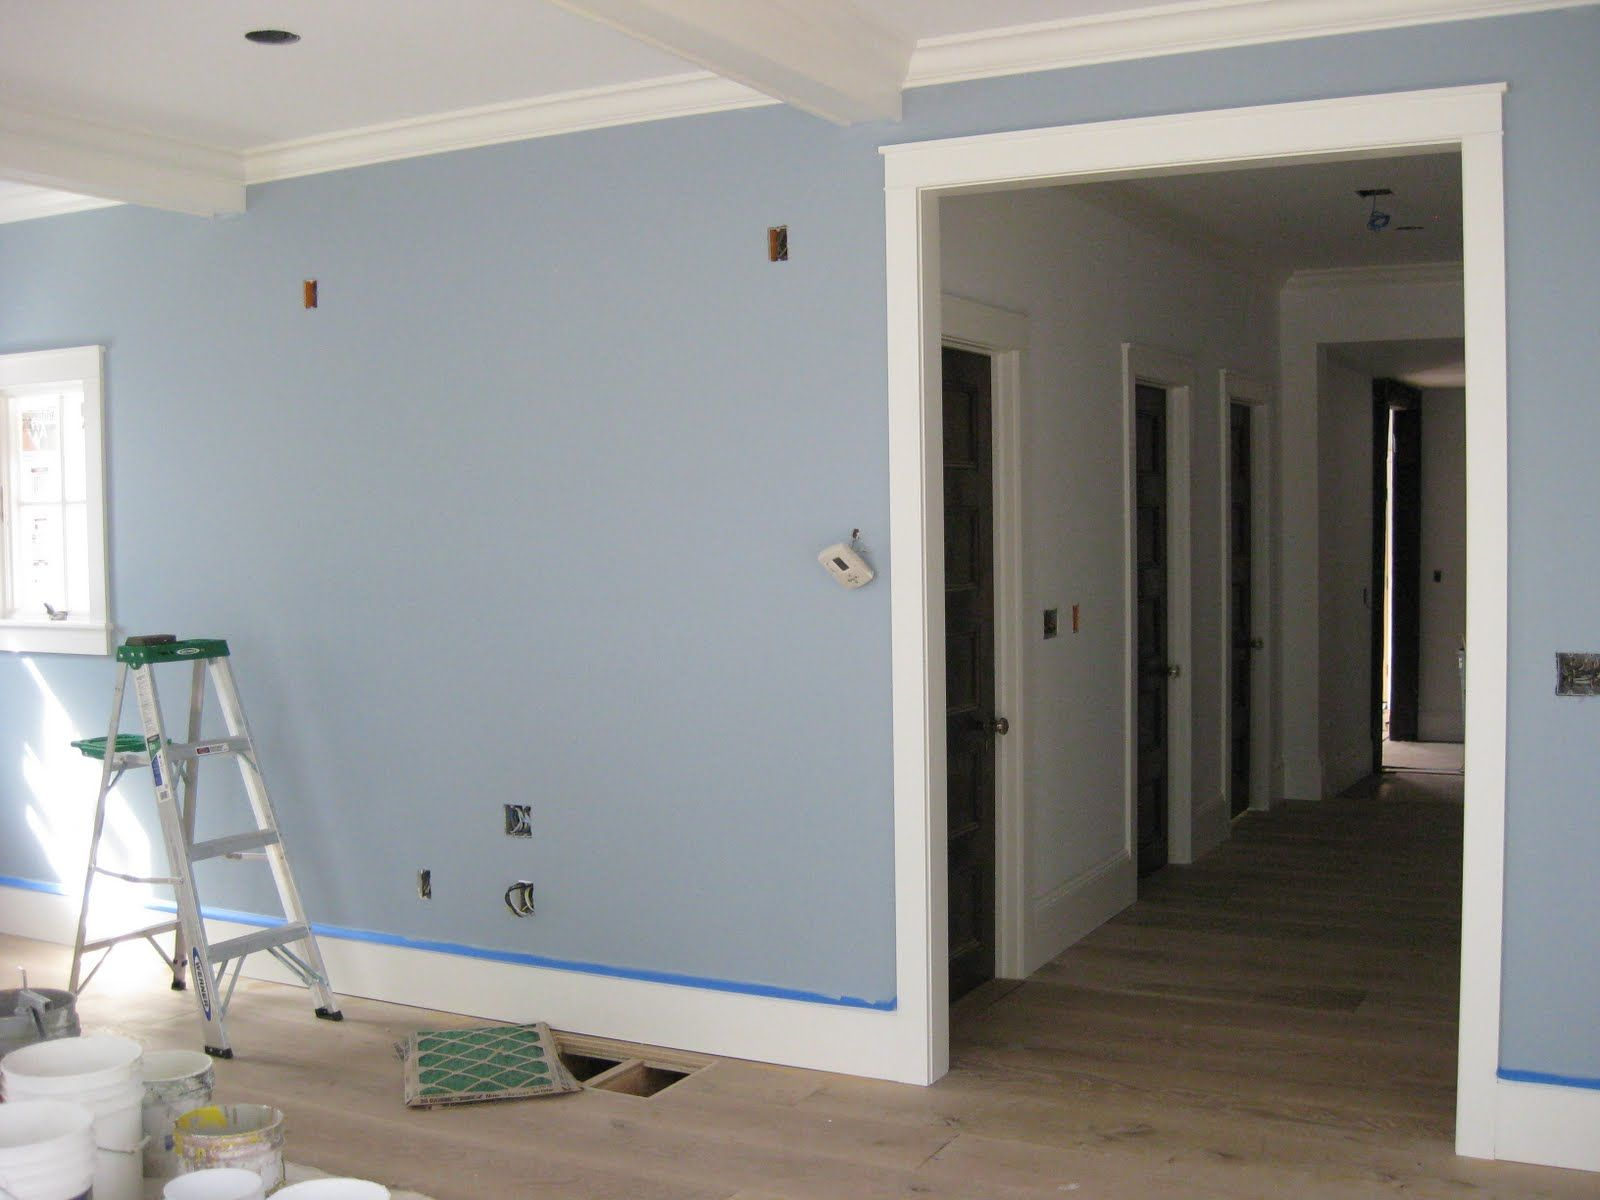 Nantucket fog by benjamin moore the color we picked for the kitchen ...